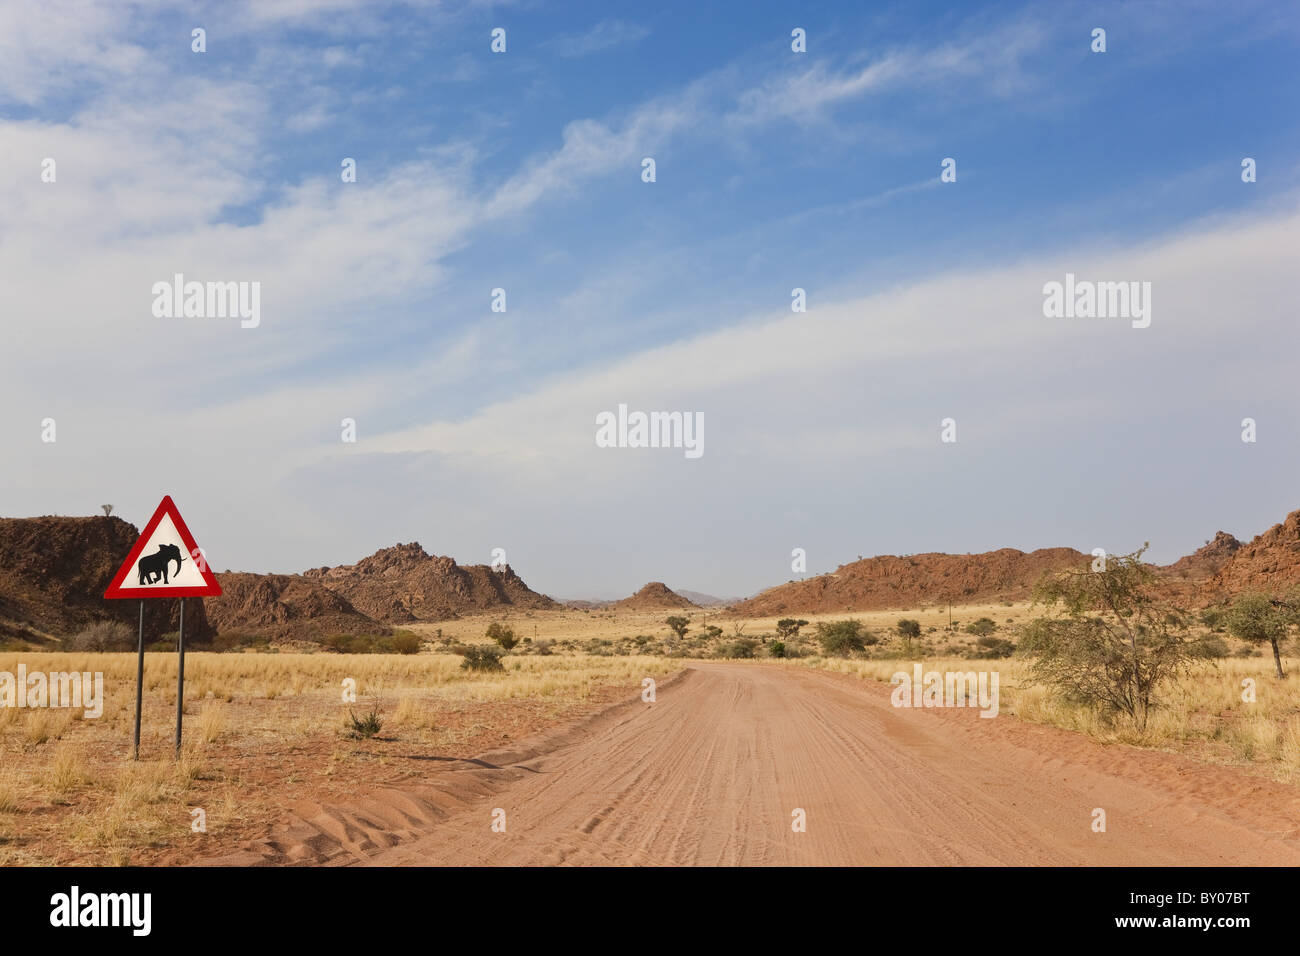 Elephant road sign & road, Damaraland, Namibie Photo Stock